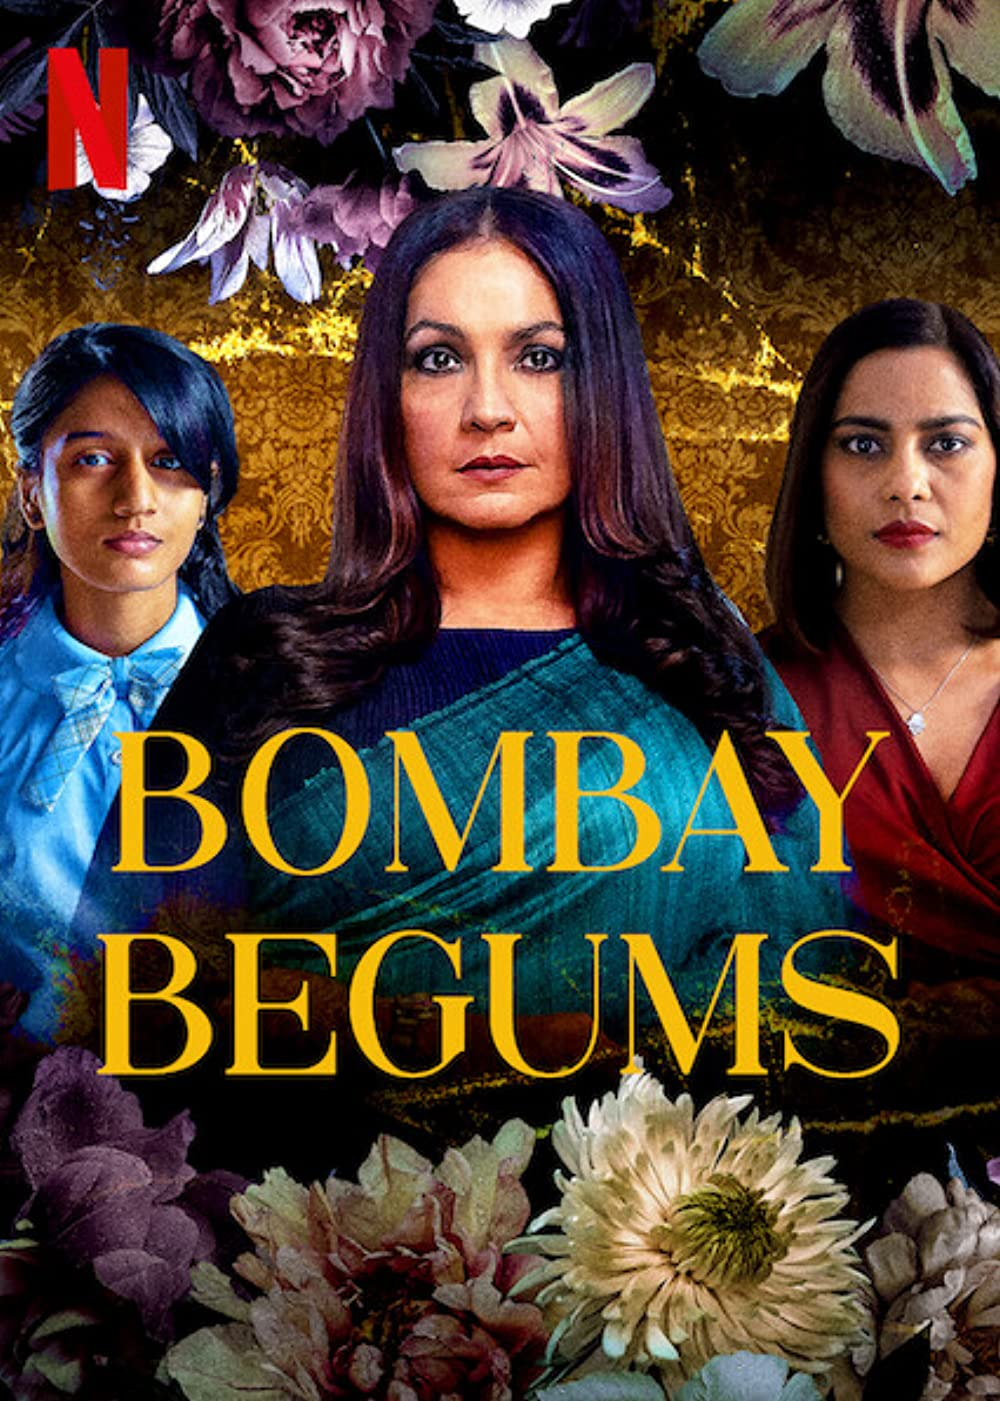 Bombay Begums 2021 S01 Hindi Netflix Original Complete Web Series 1080p HDRip 4.21GB Download